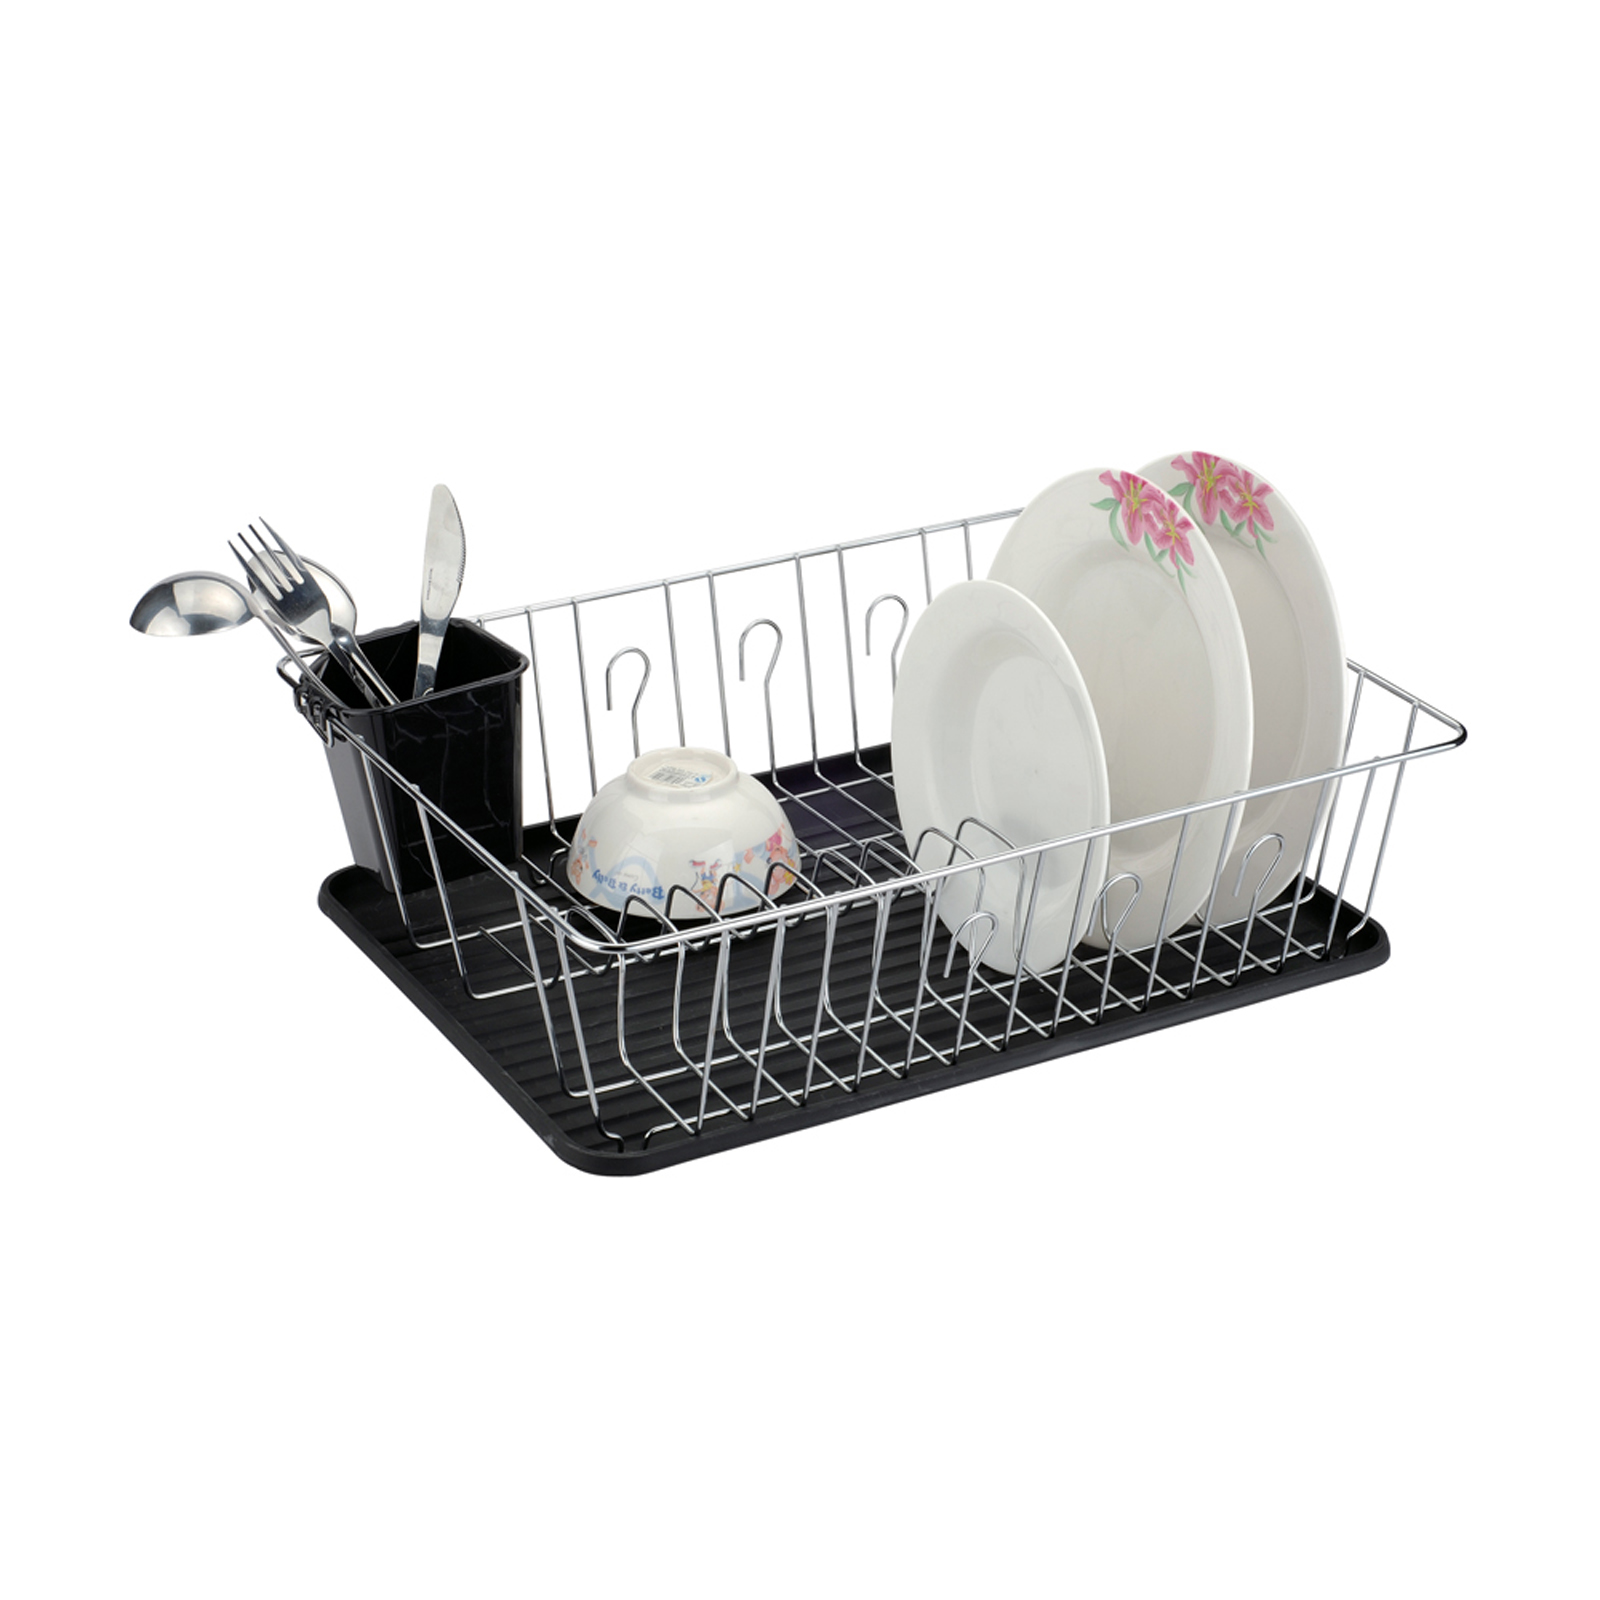 Better Chef 16-inch Dish Rack by Better Chef